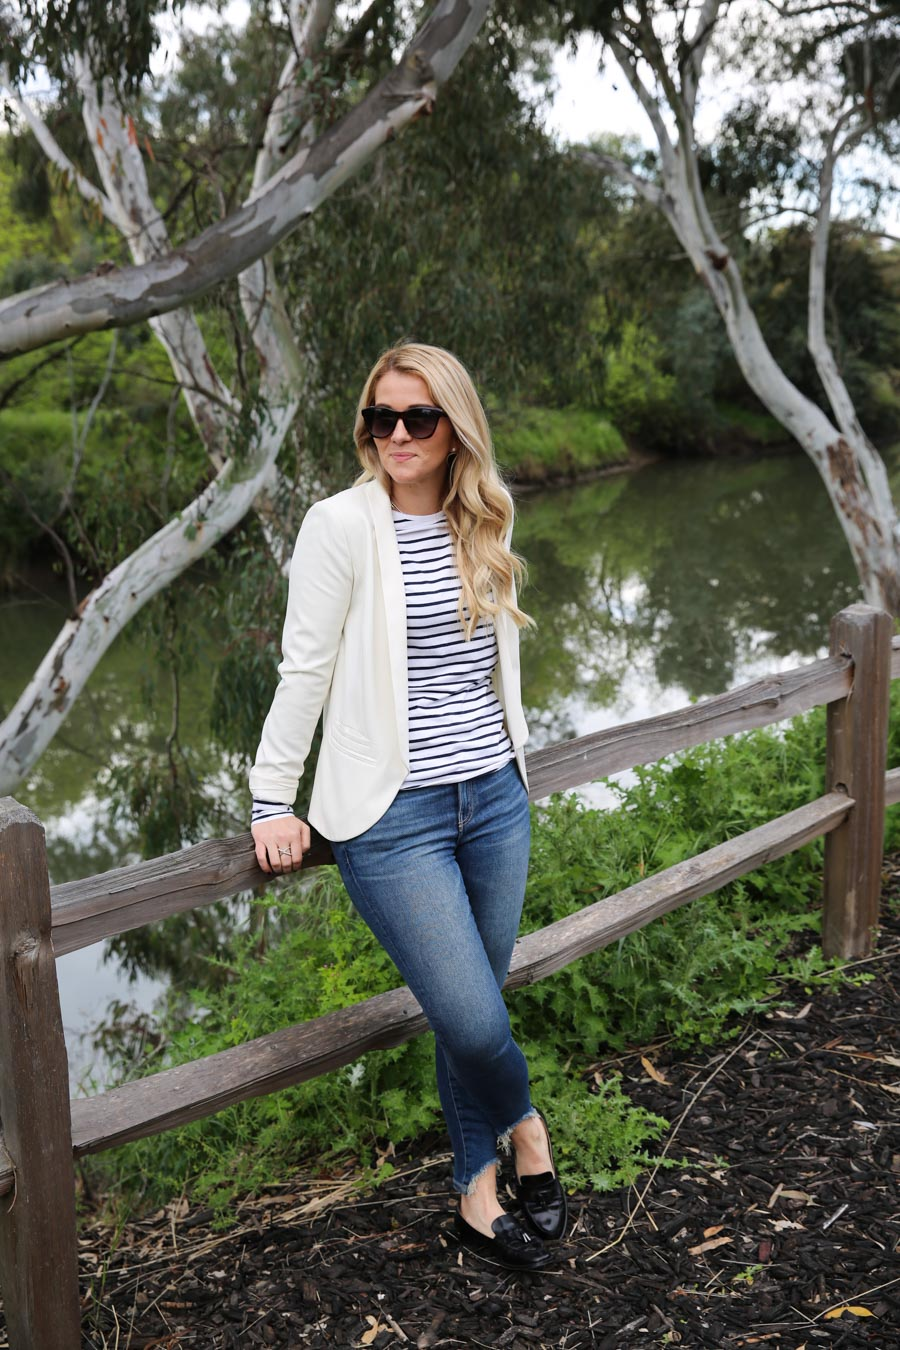 What to Wear in Wine Country - Striped Shirt + Jeans